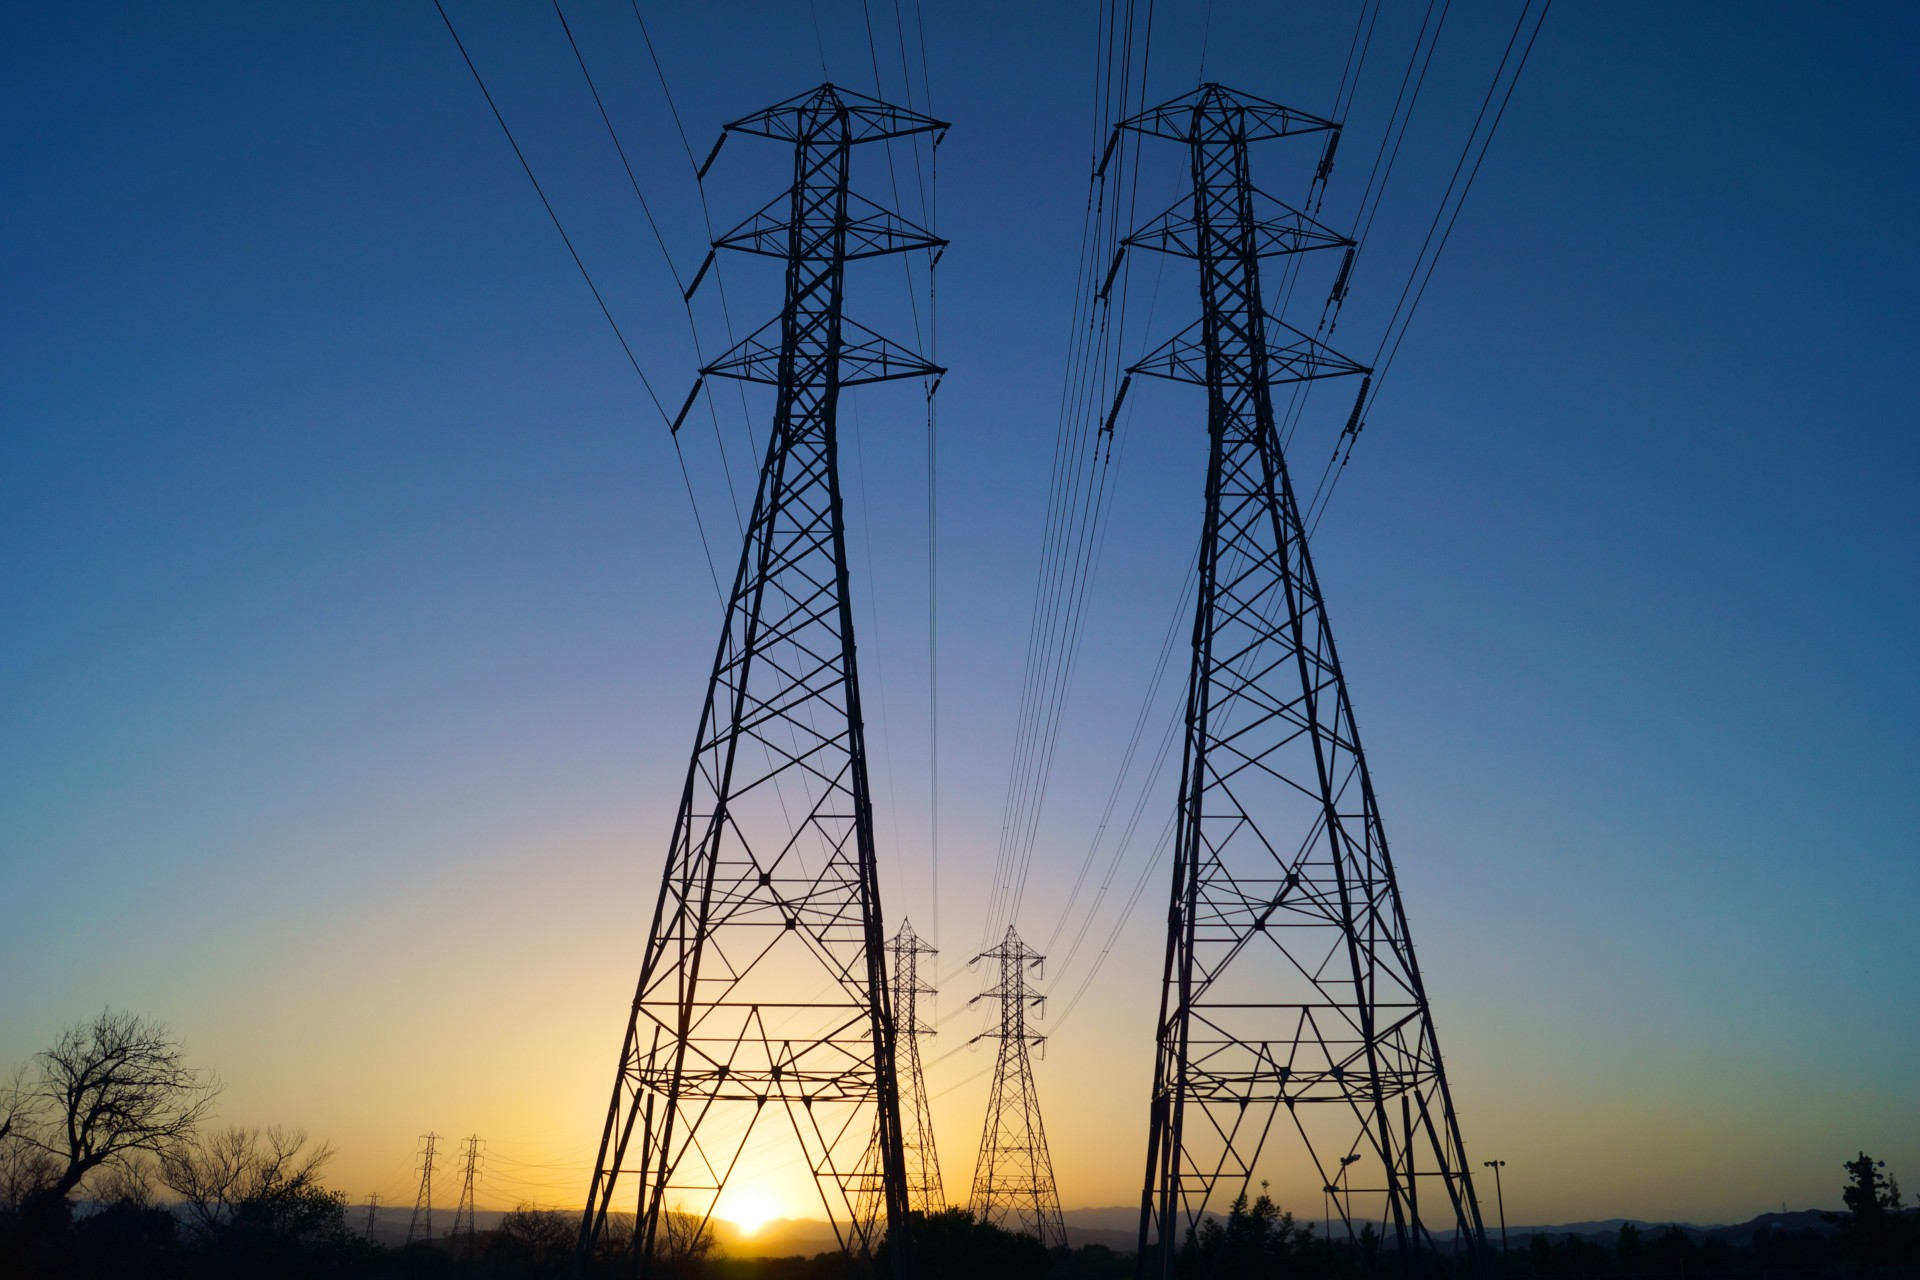 Electrical Power Lines Free Stock Photo - Public Domain Pictures